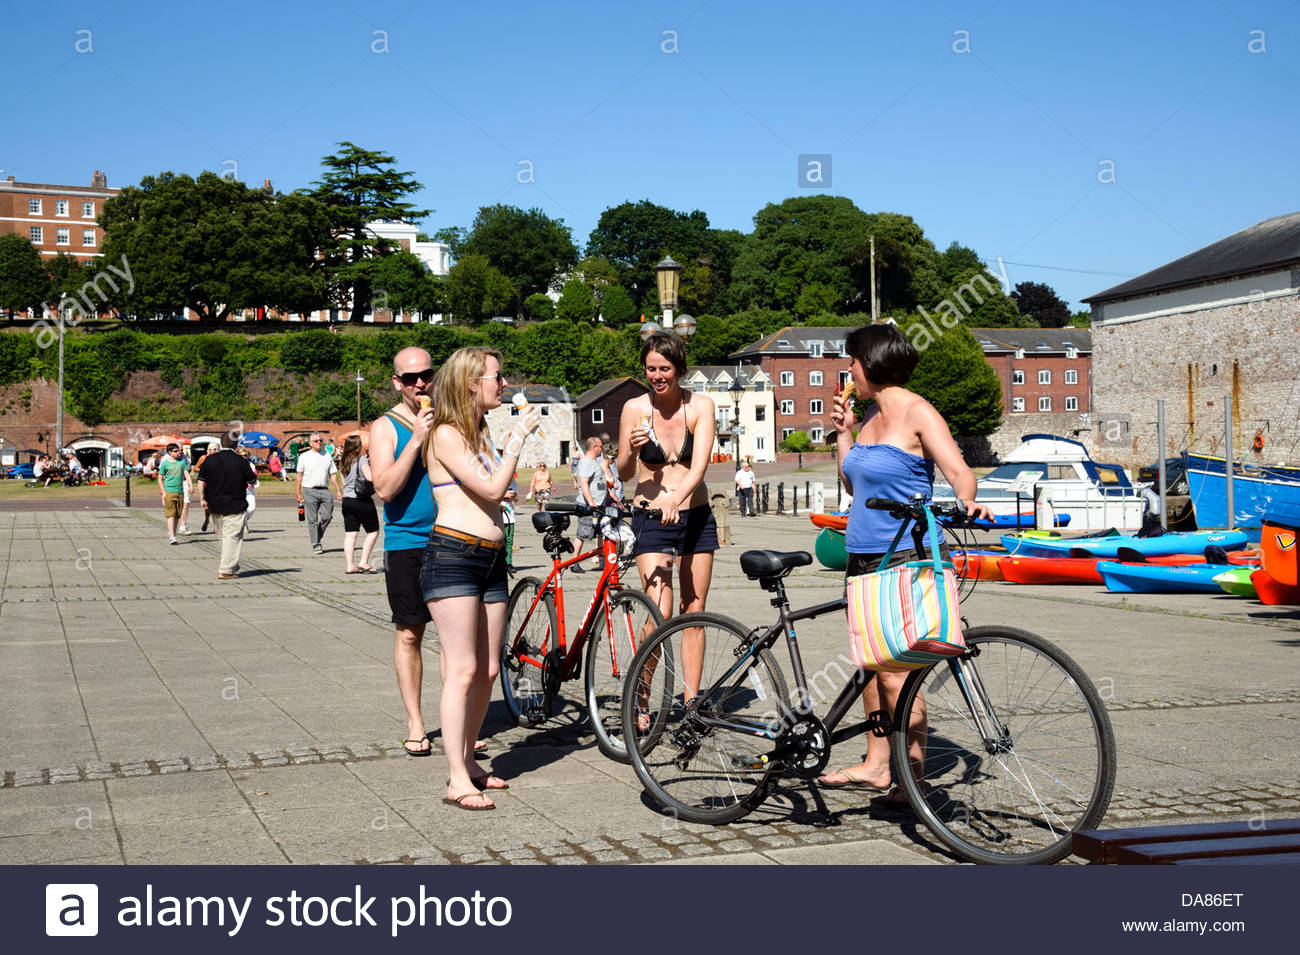 People enjoying ice creams on a summer day at The Quay, Exeter, Devon, UK. - Stock Image